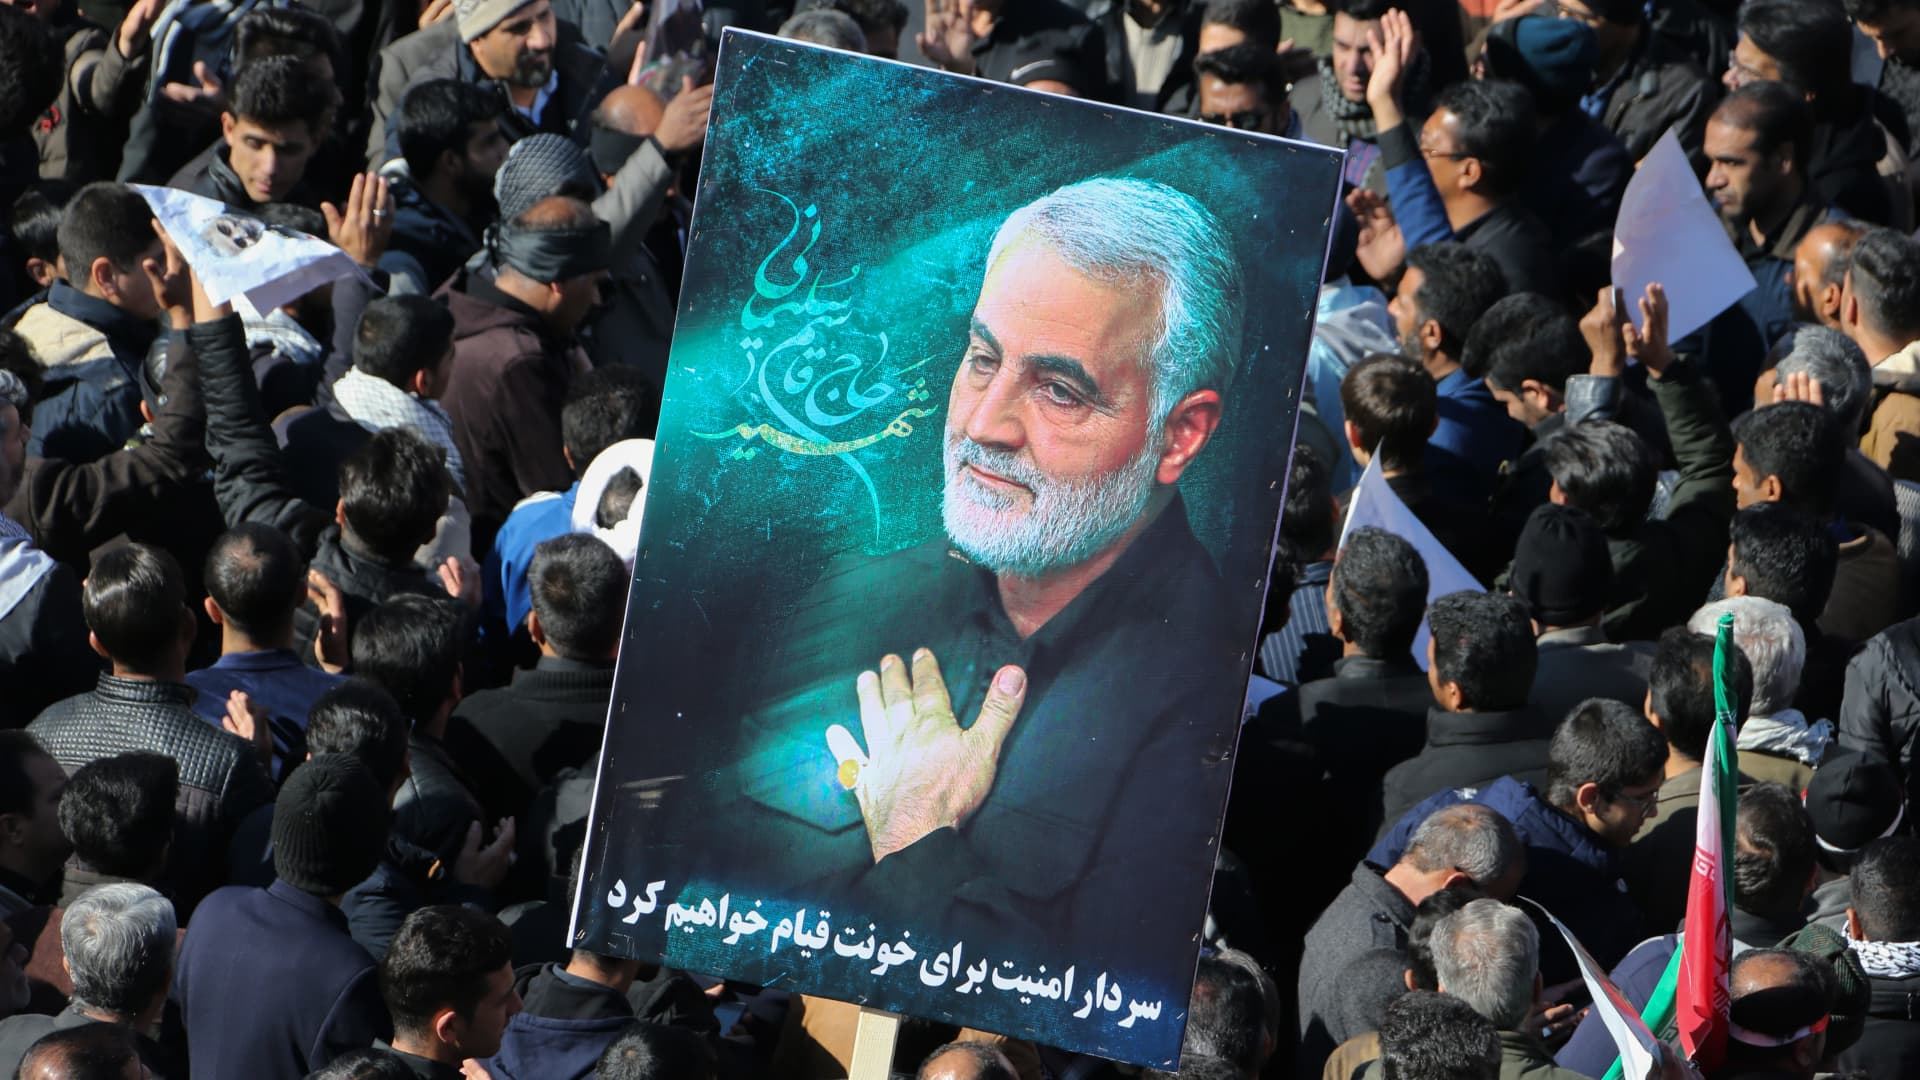 Iranian mourners gather during the final stage of funeral processions for slain top general Qasem Soleimani, in his hometown Kerman on January 7, 2020.